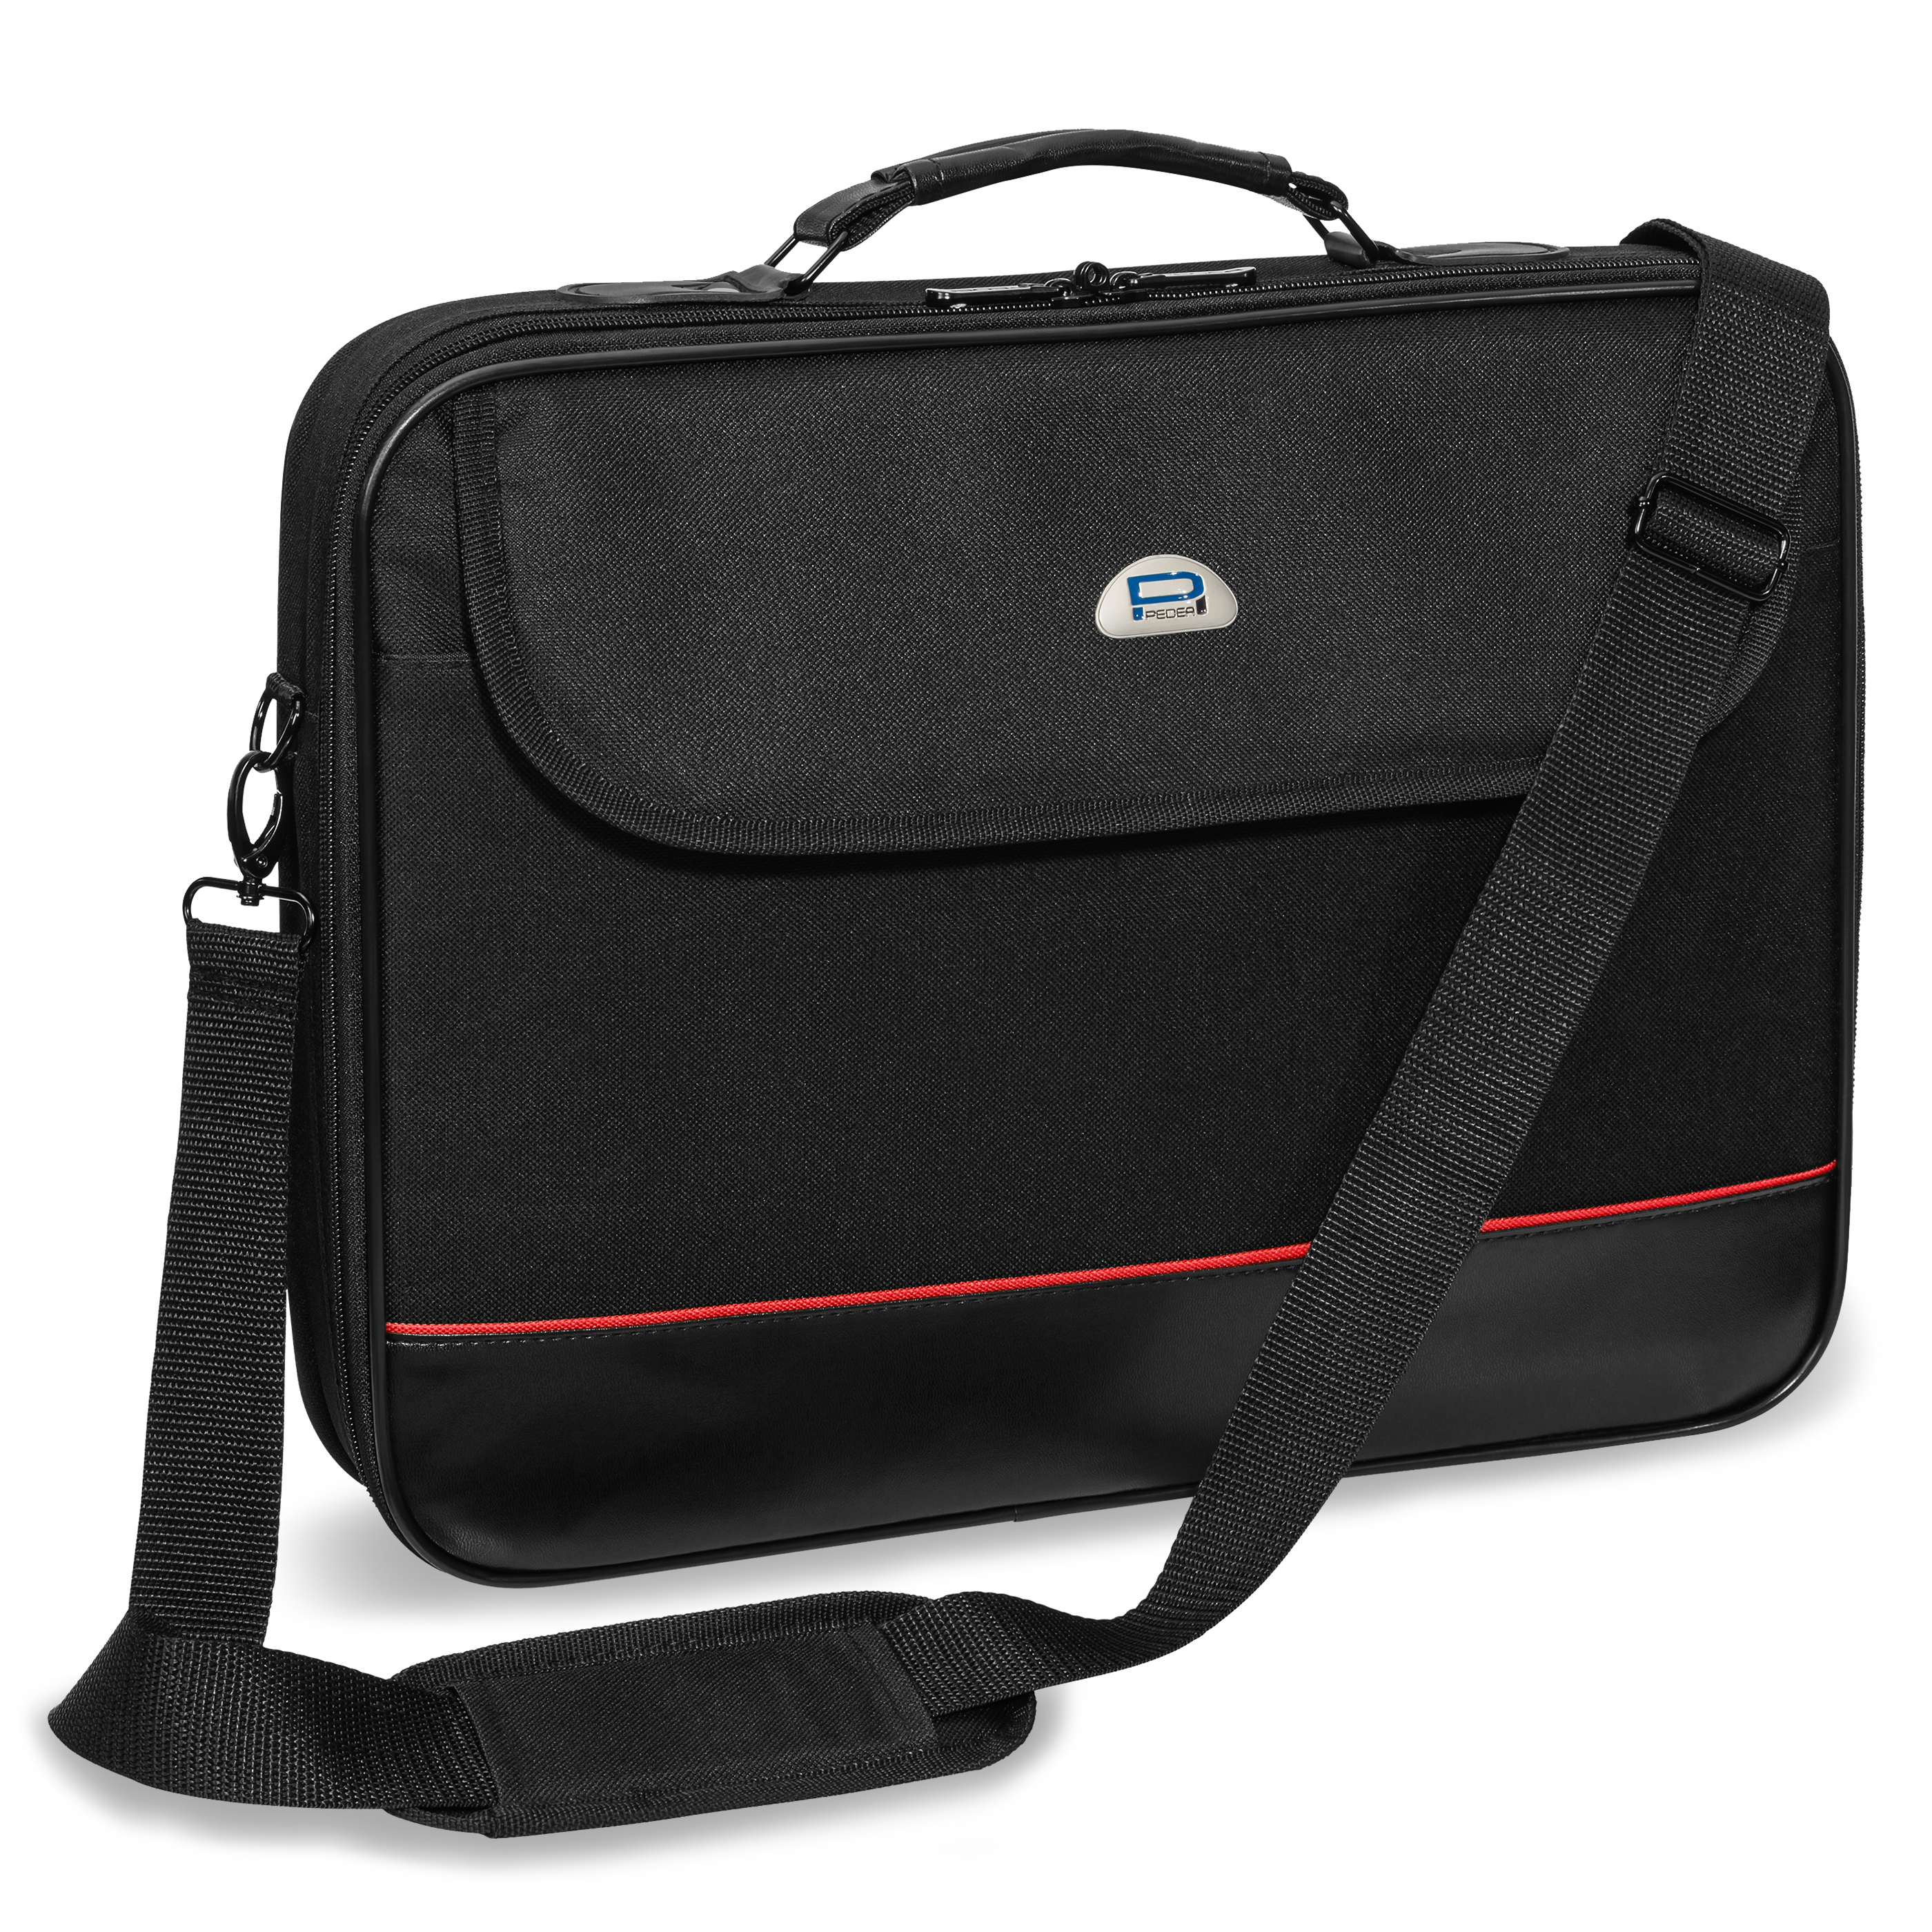 PEDEA Trendline Clamshell Laptop Bag Case 15.6